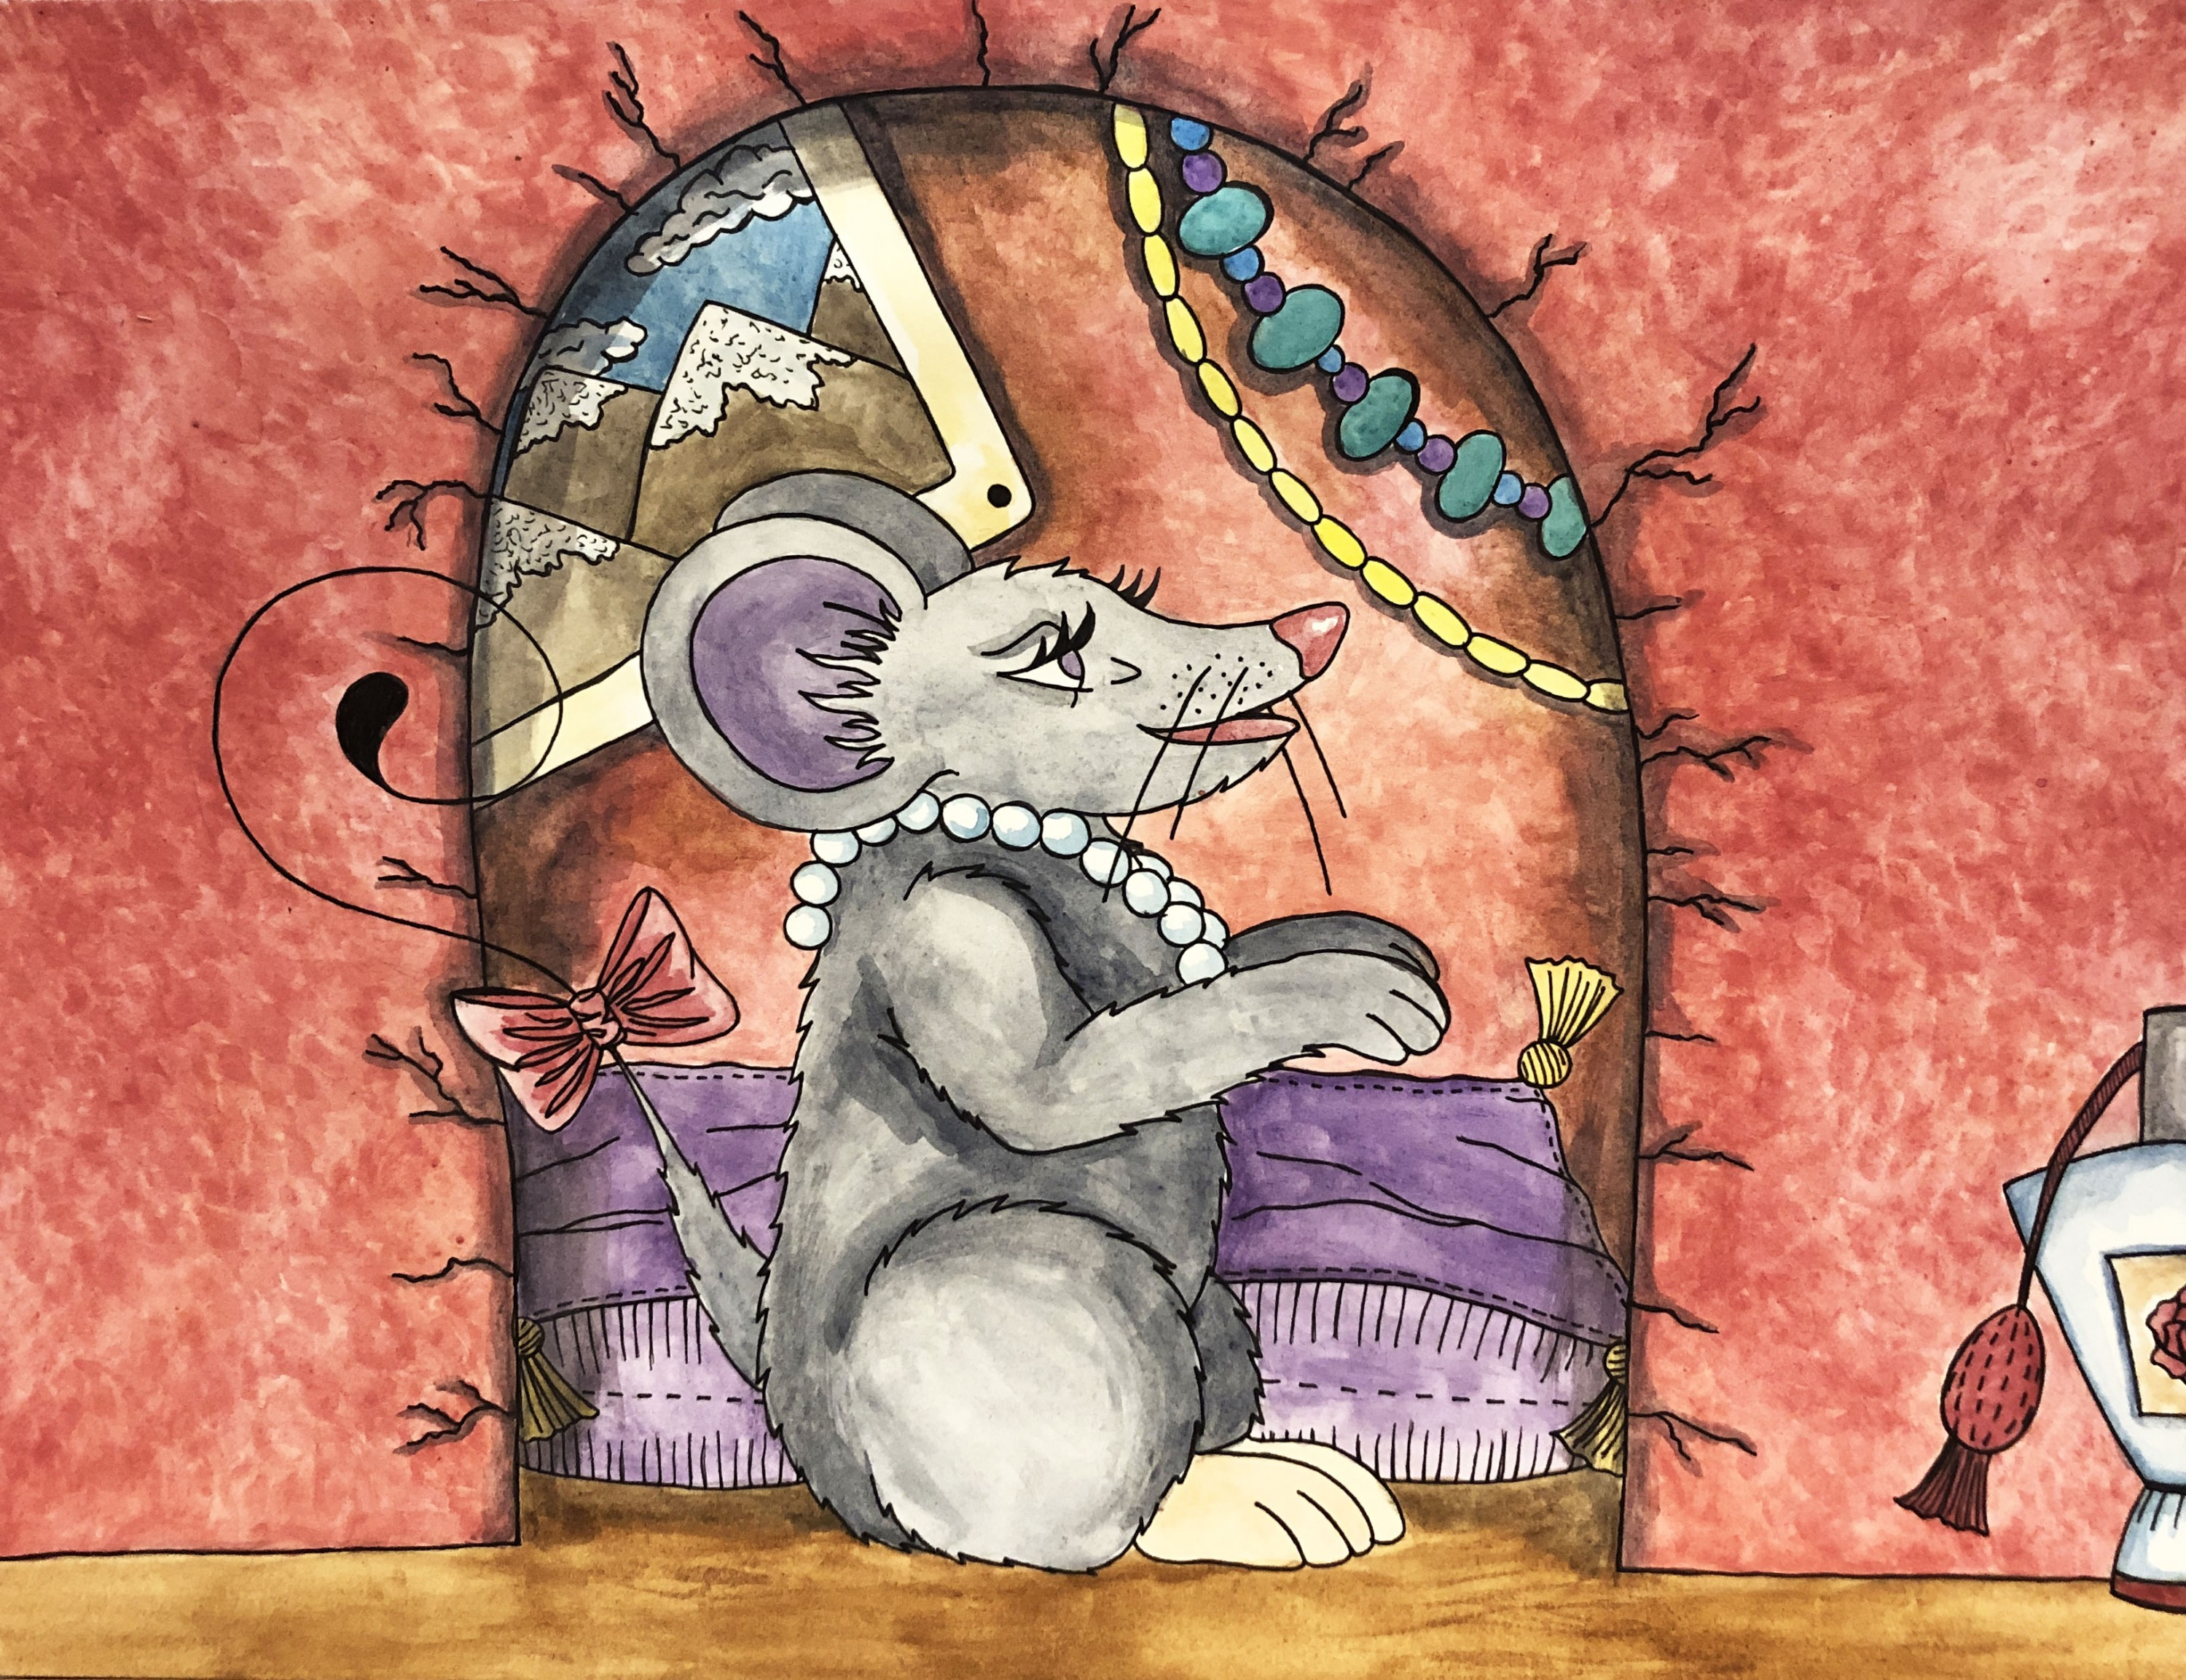 Violet the mouse stands in front of her nook inside of the antique shop. Her fur is grey and she wears a string of pearls and a red bow on her tail. The walls behind her are a terracotta color and her nook is decorated with postcards, beads, and other sma